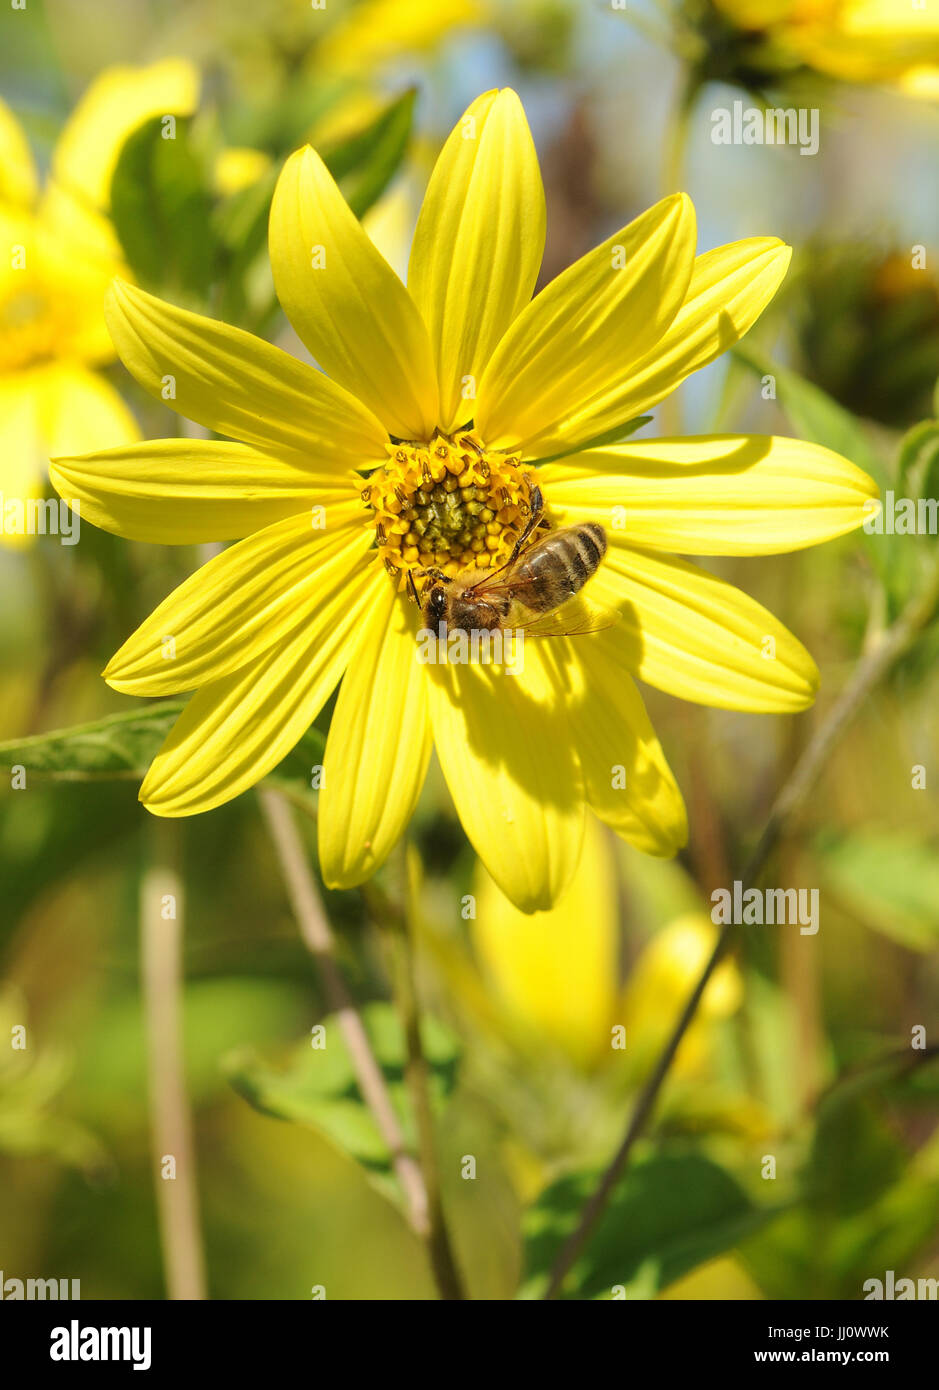 A honey bee (Apis mellifera) forages on a yellow flower. Henfield, Sussex, UK. - Stock Image